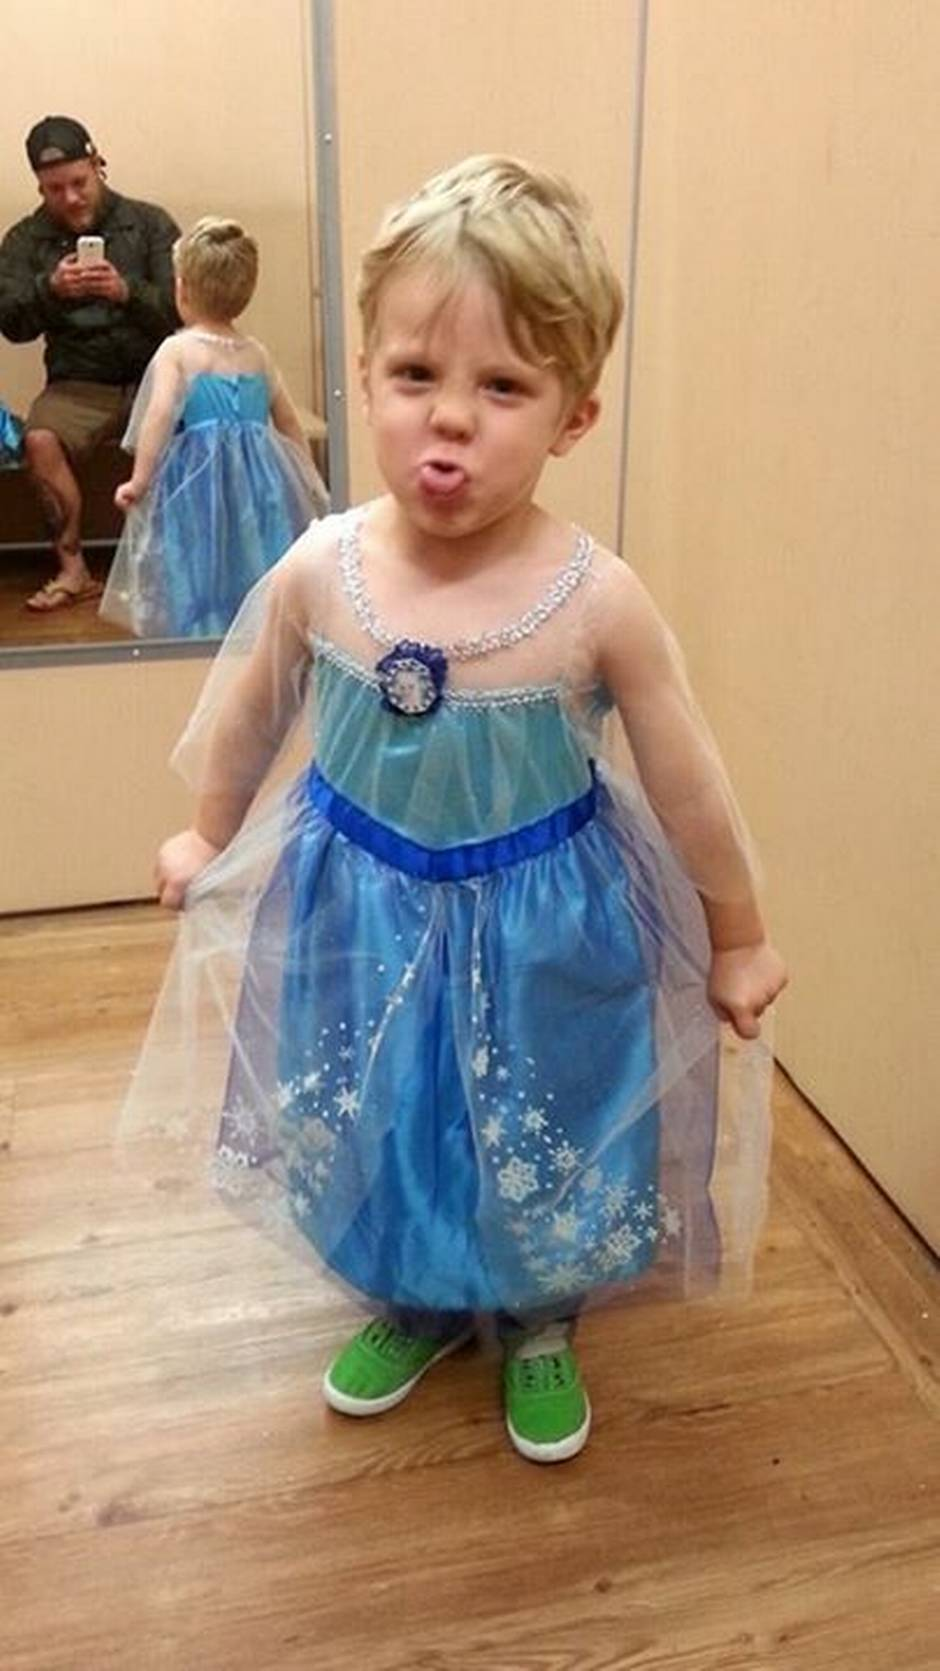 dad's supportive response to son's elsa halloween costume goes viral